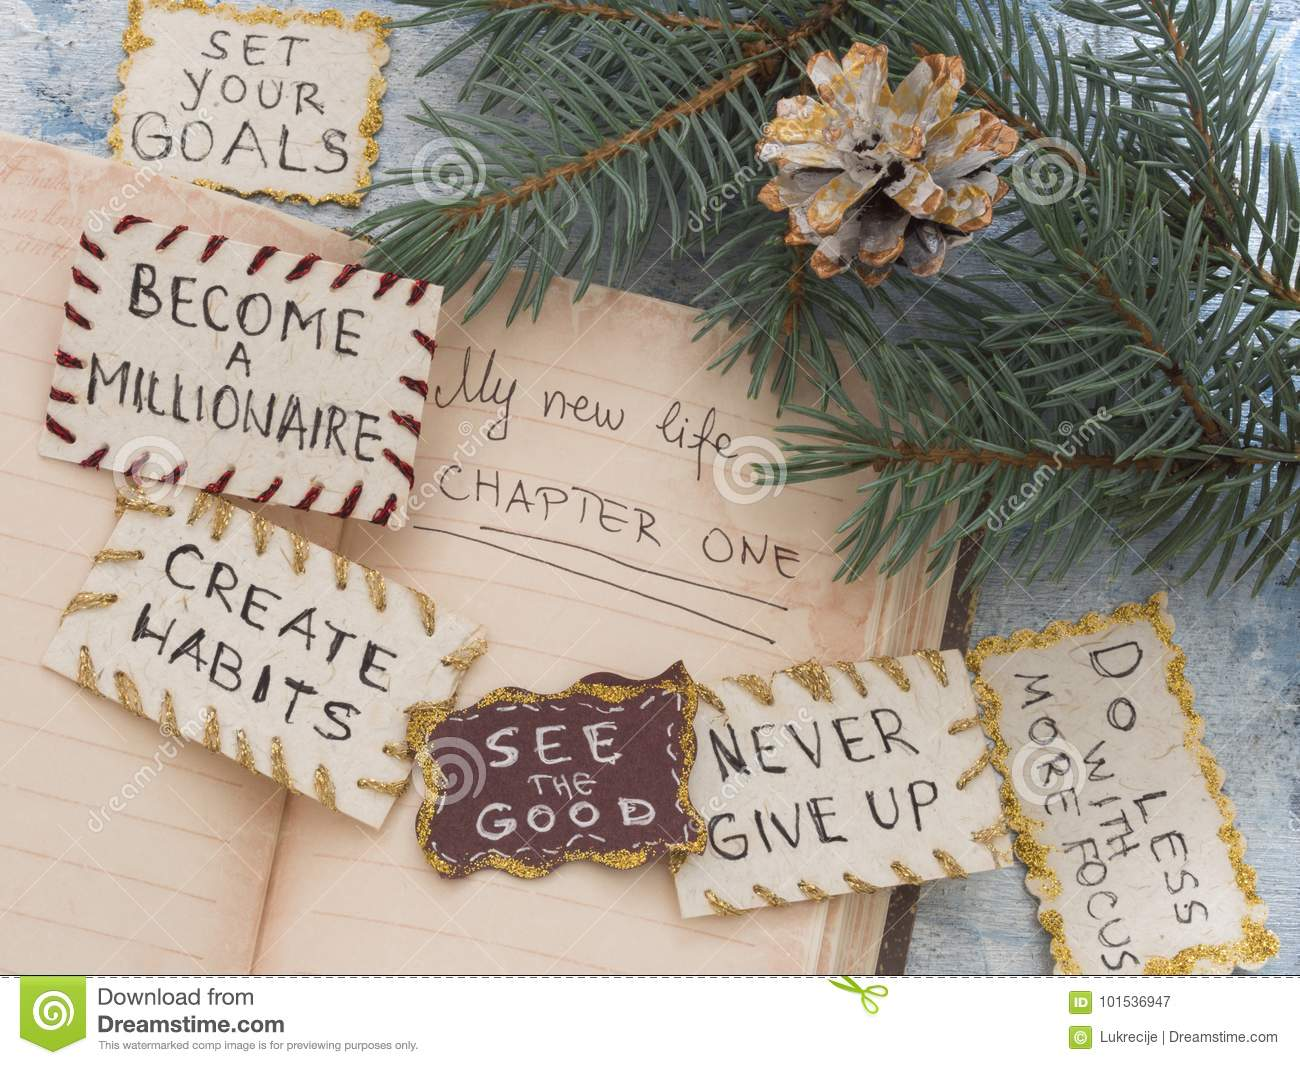 Motivational quotes encouragement holiday goals new years resolutions